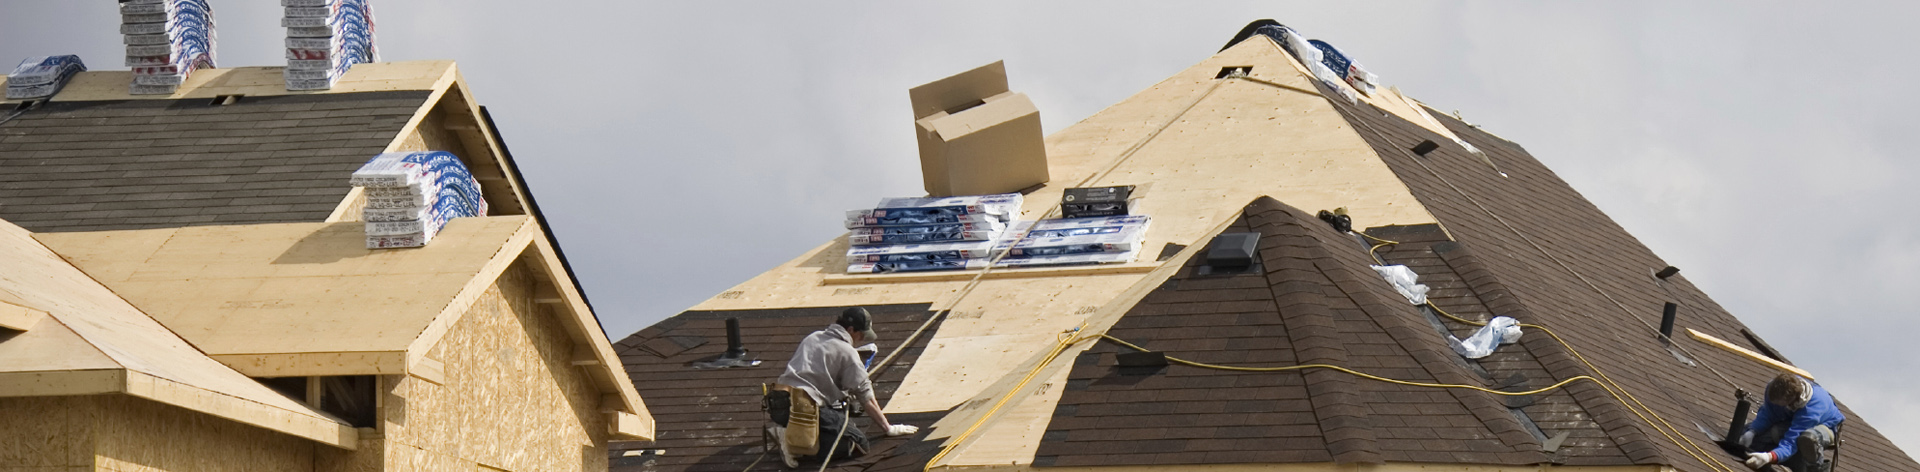 Sydney Roofing Services - Plumber